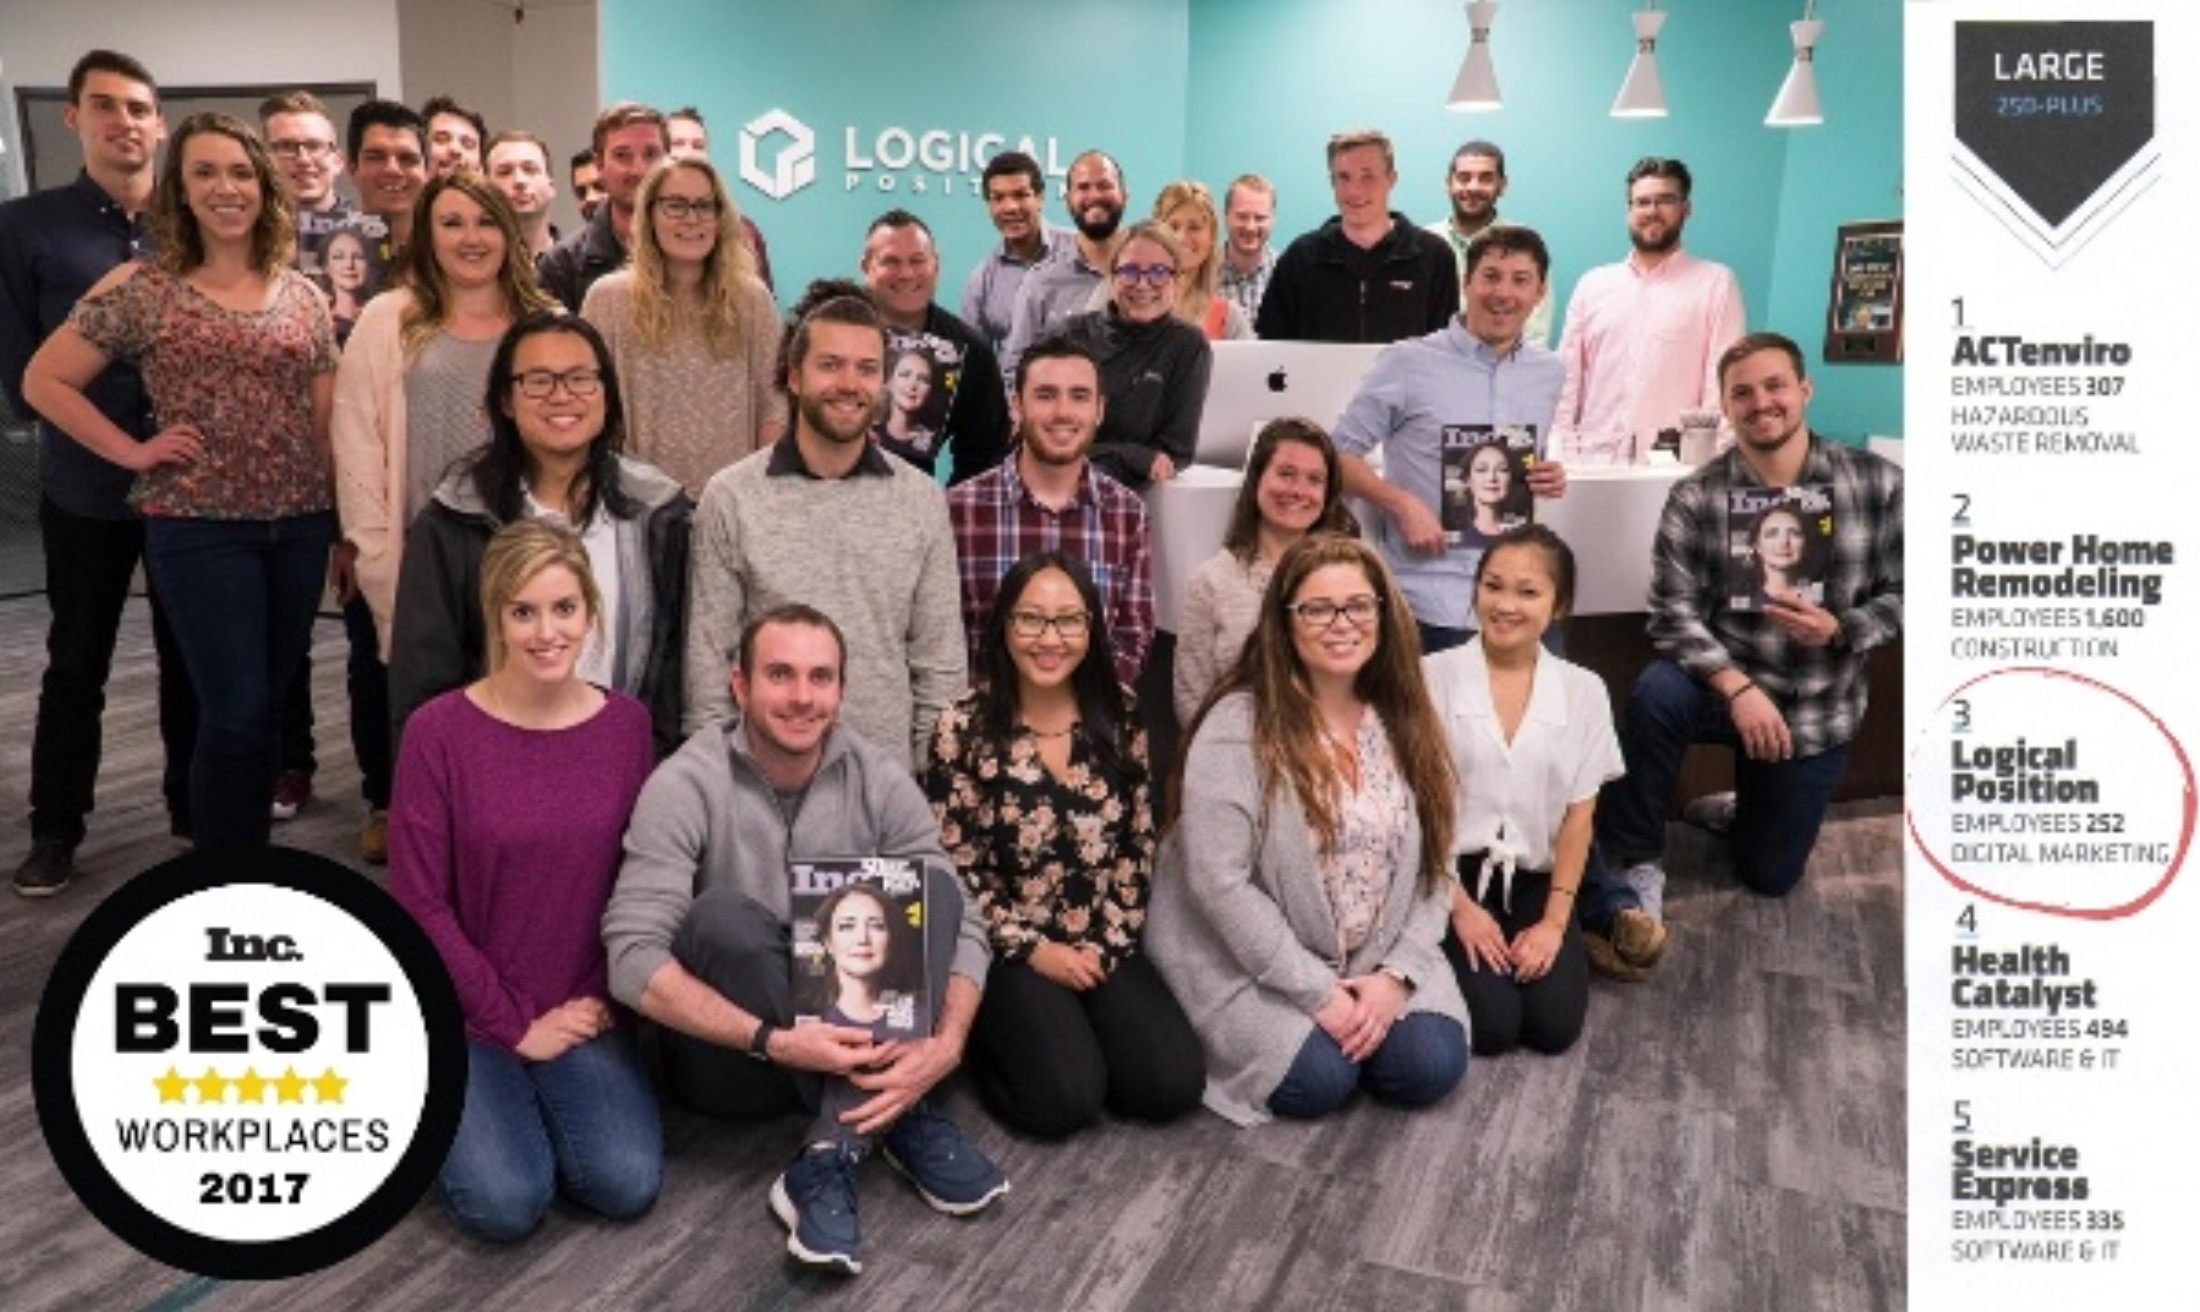 Logical Position 3rd Best Large Workplace in America [Inc. Magazine]